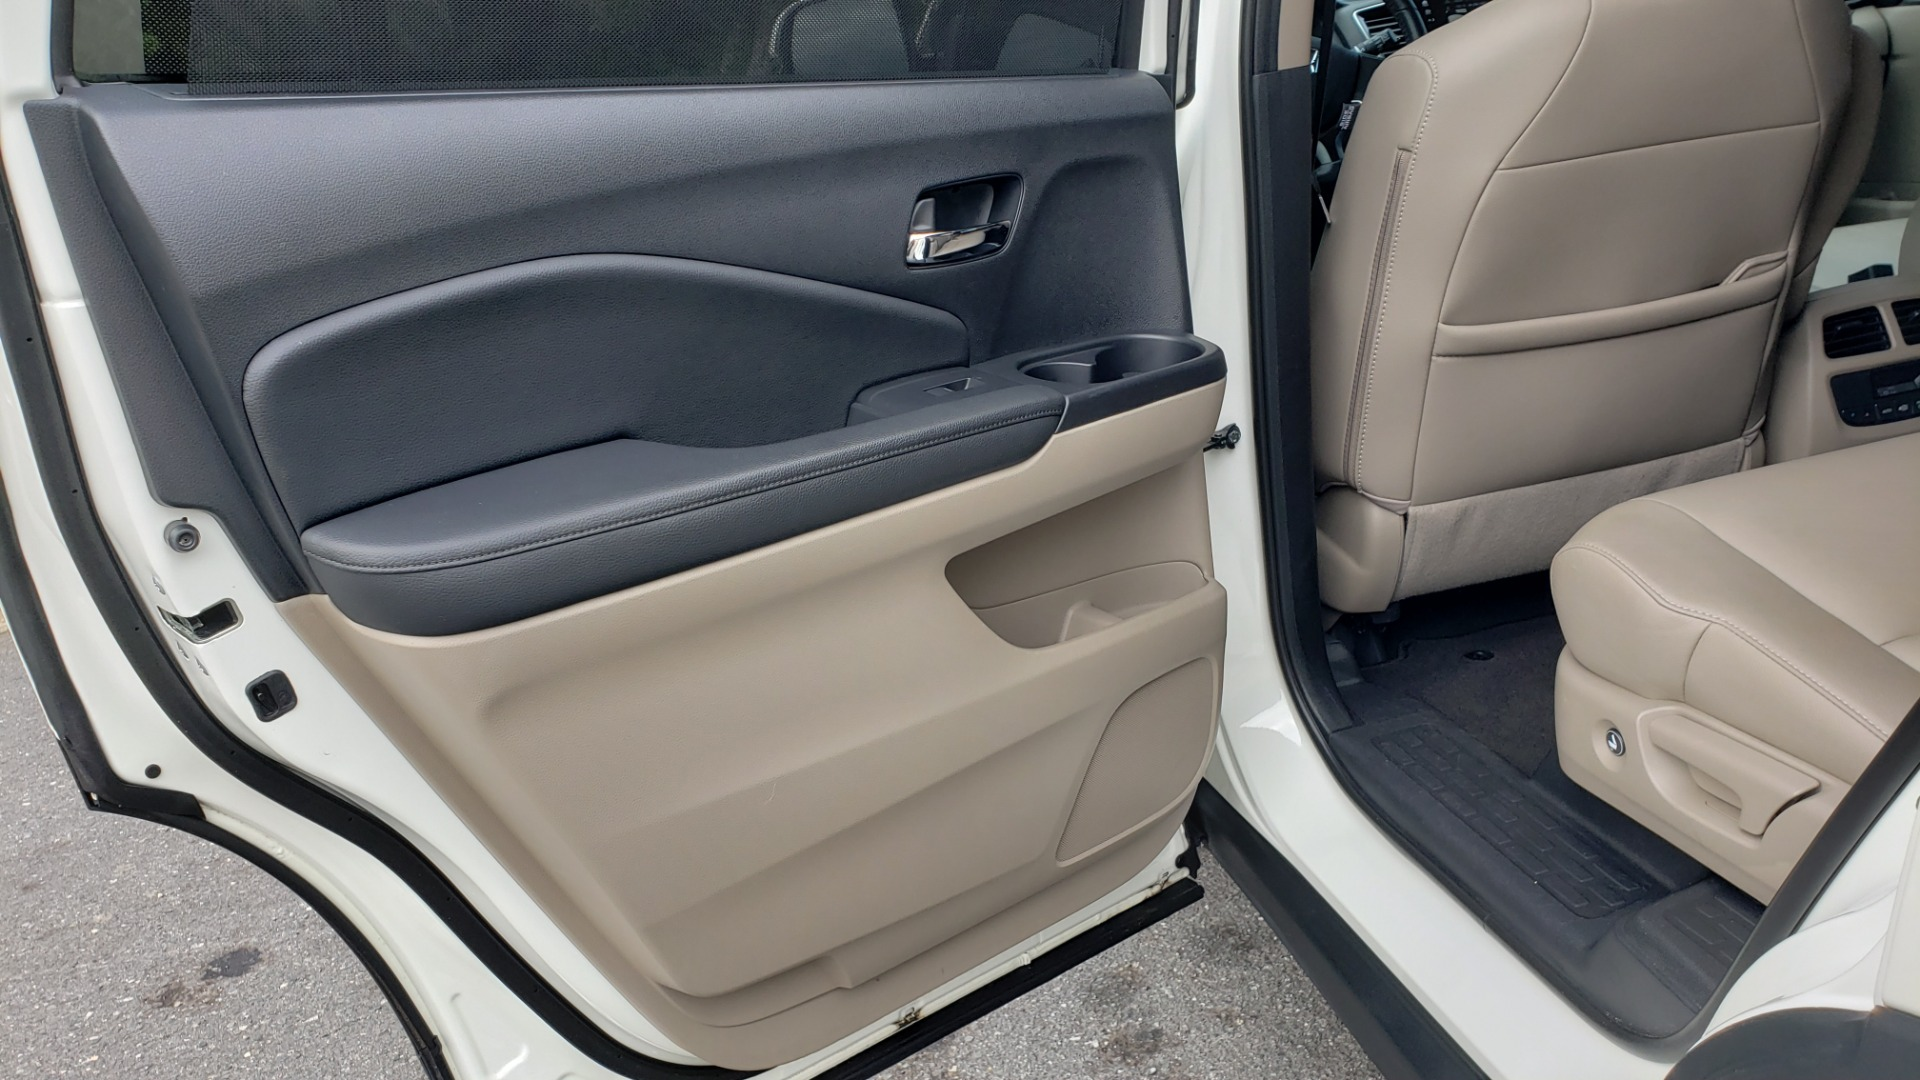 Used 2019 Honda PILOT EX-L / V6 / NAV / SUNROOF / DVD / 3-ROW / REARVIEW for sale Sold at Formula Imports in Charlotte NC 28227 61